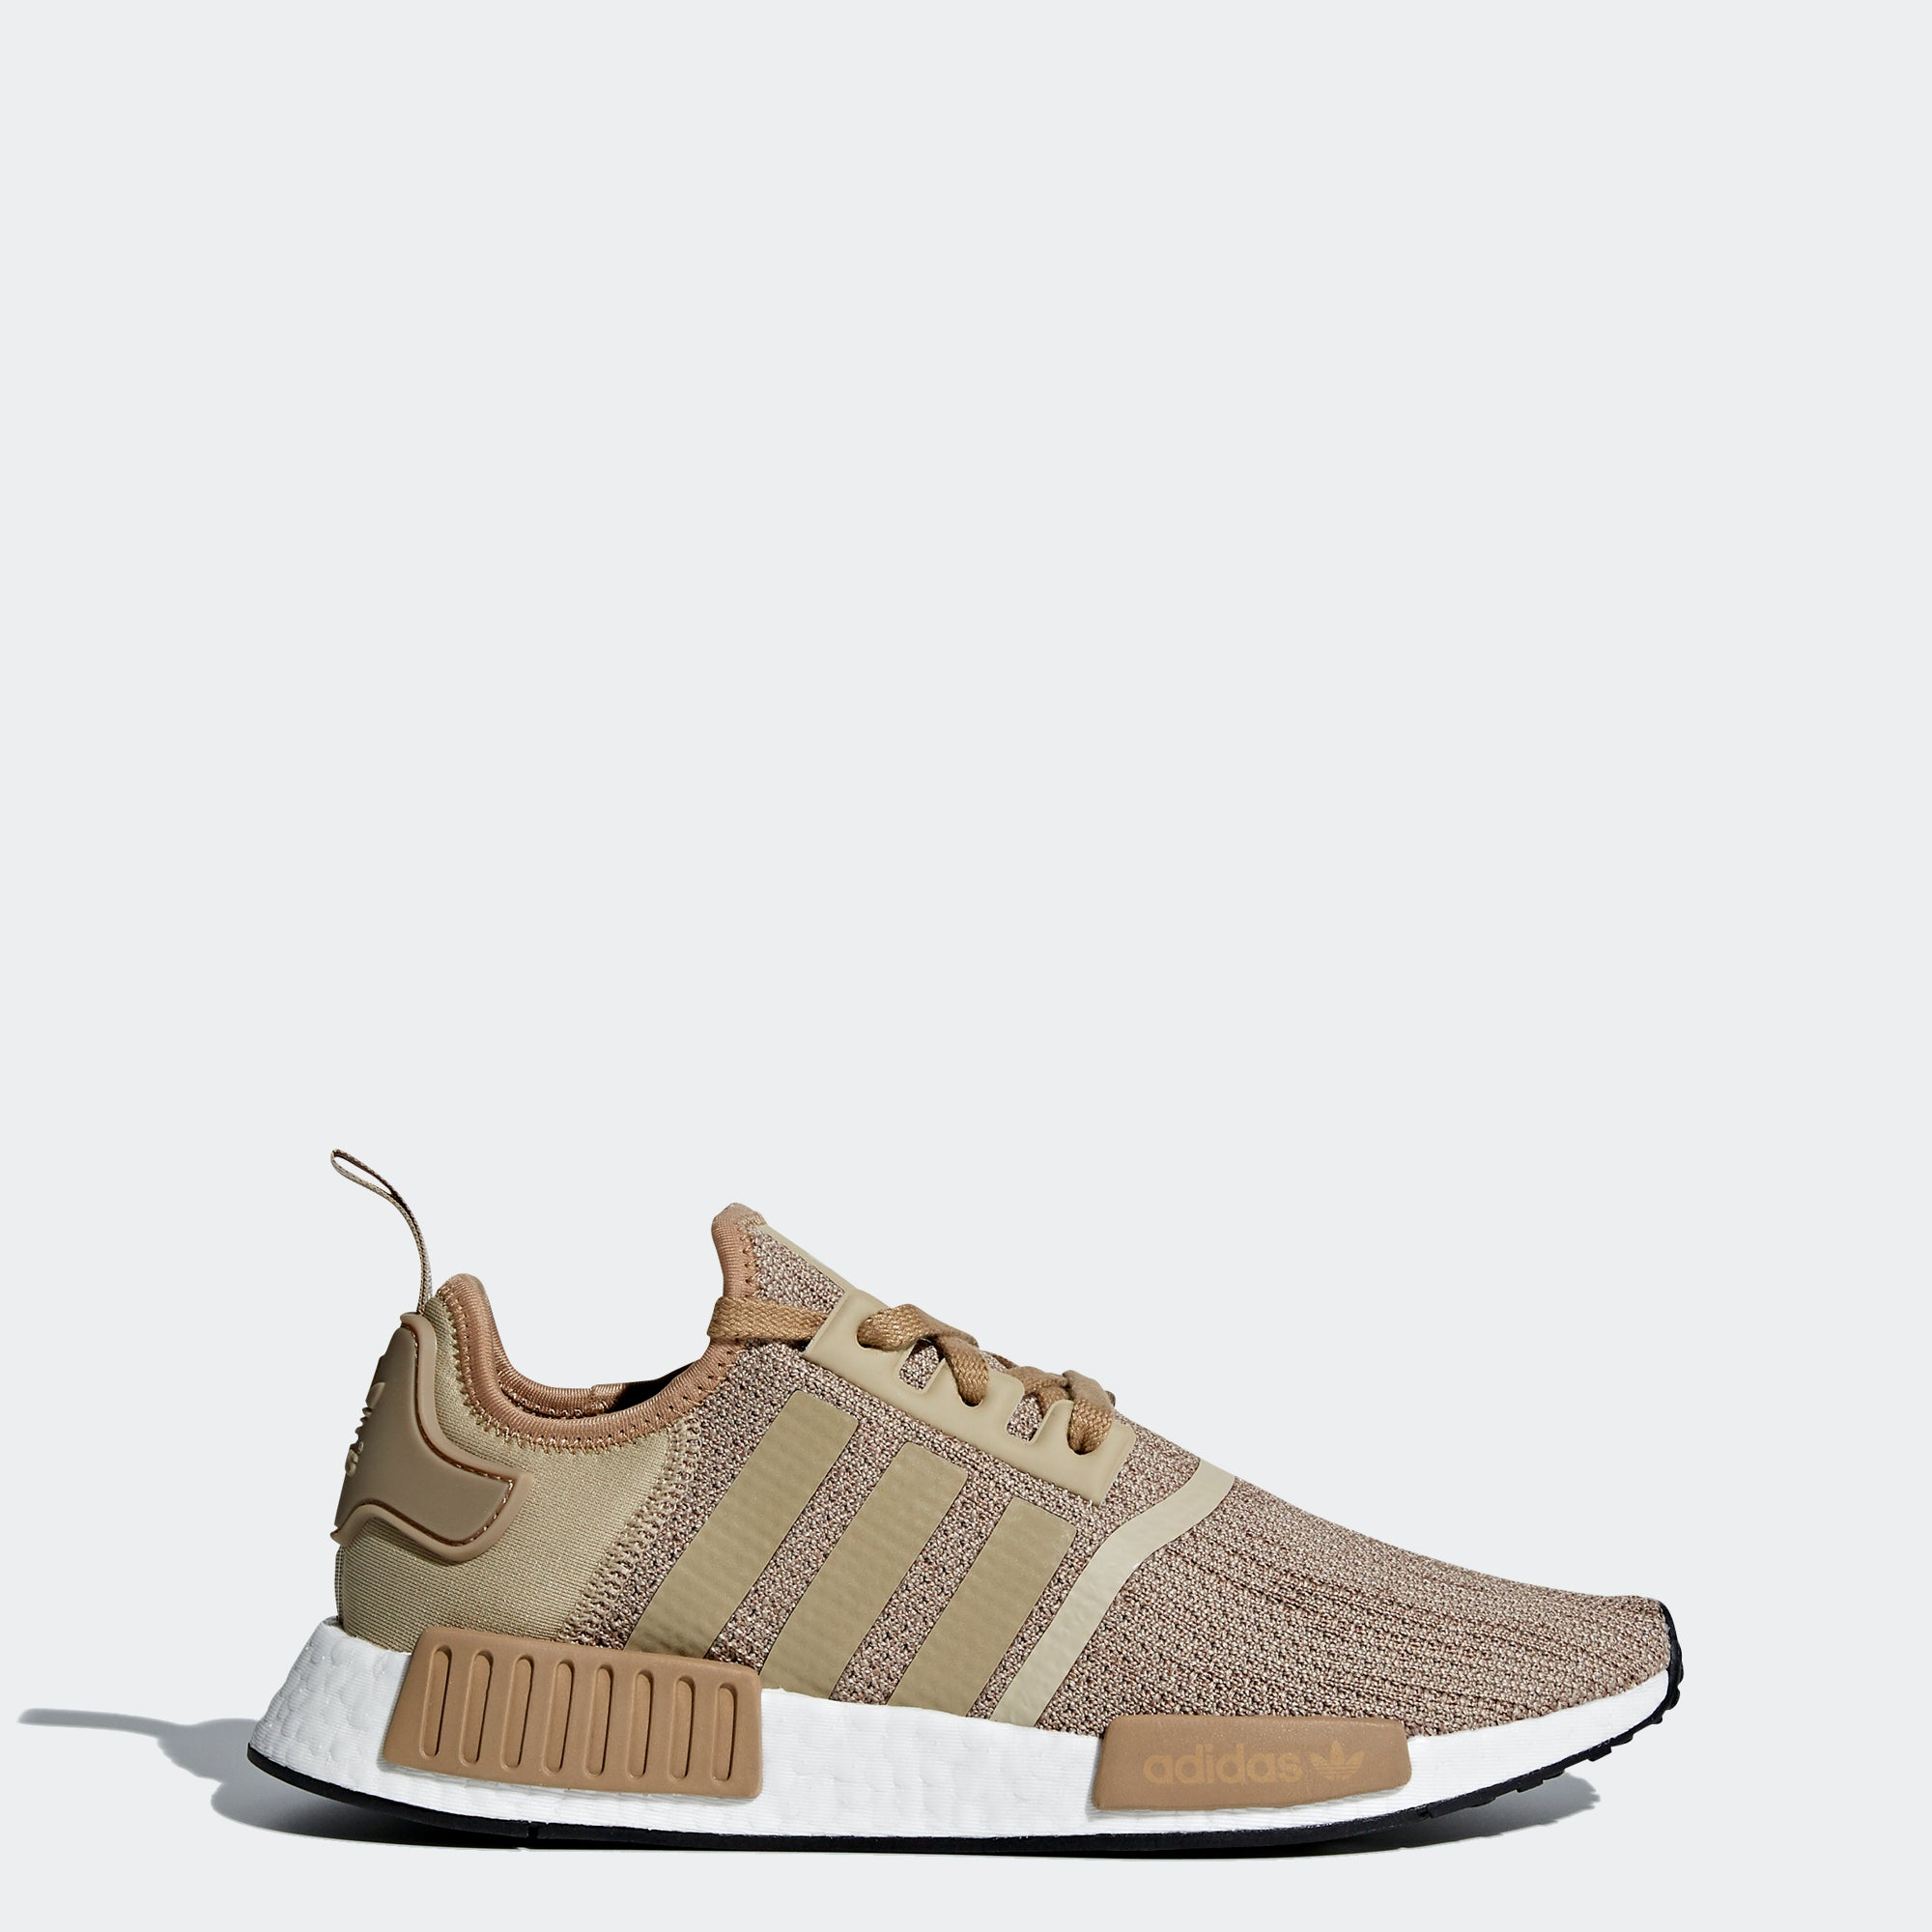 Men's adidas Originals NMD_R1 Shoes Brown and Raw Gold B79760 ...